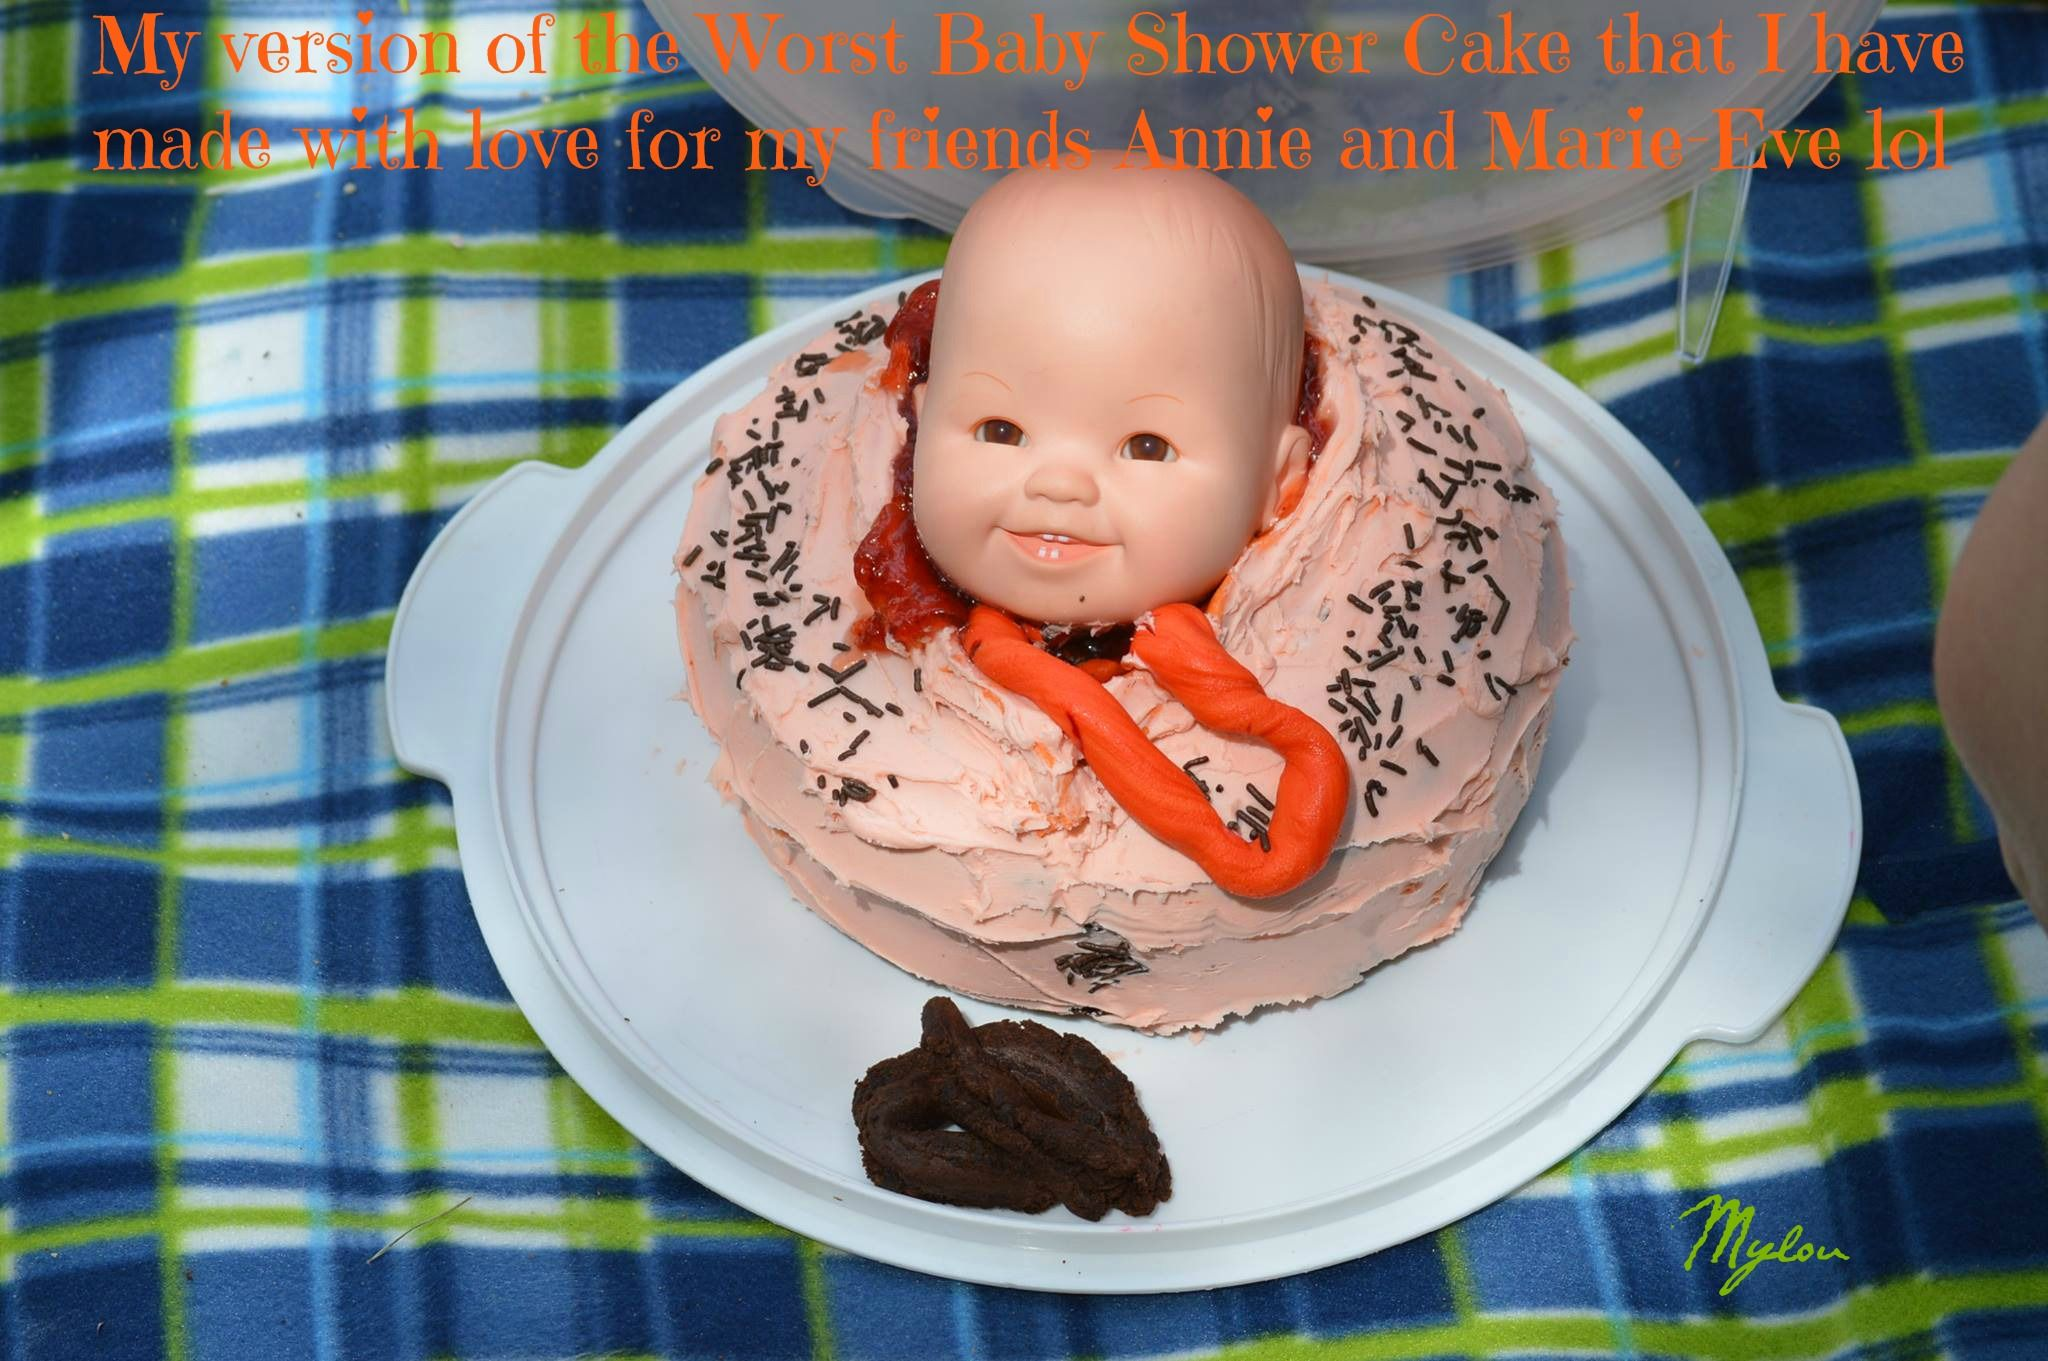 My Version Of The Worst Baby Shower Cake That I Have Made For My